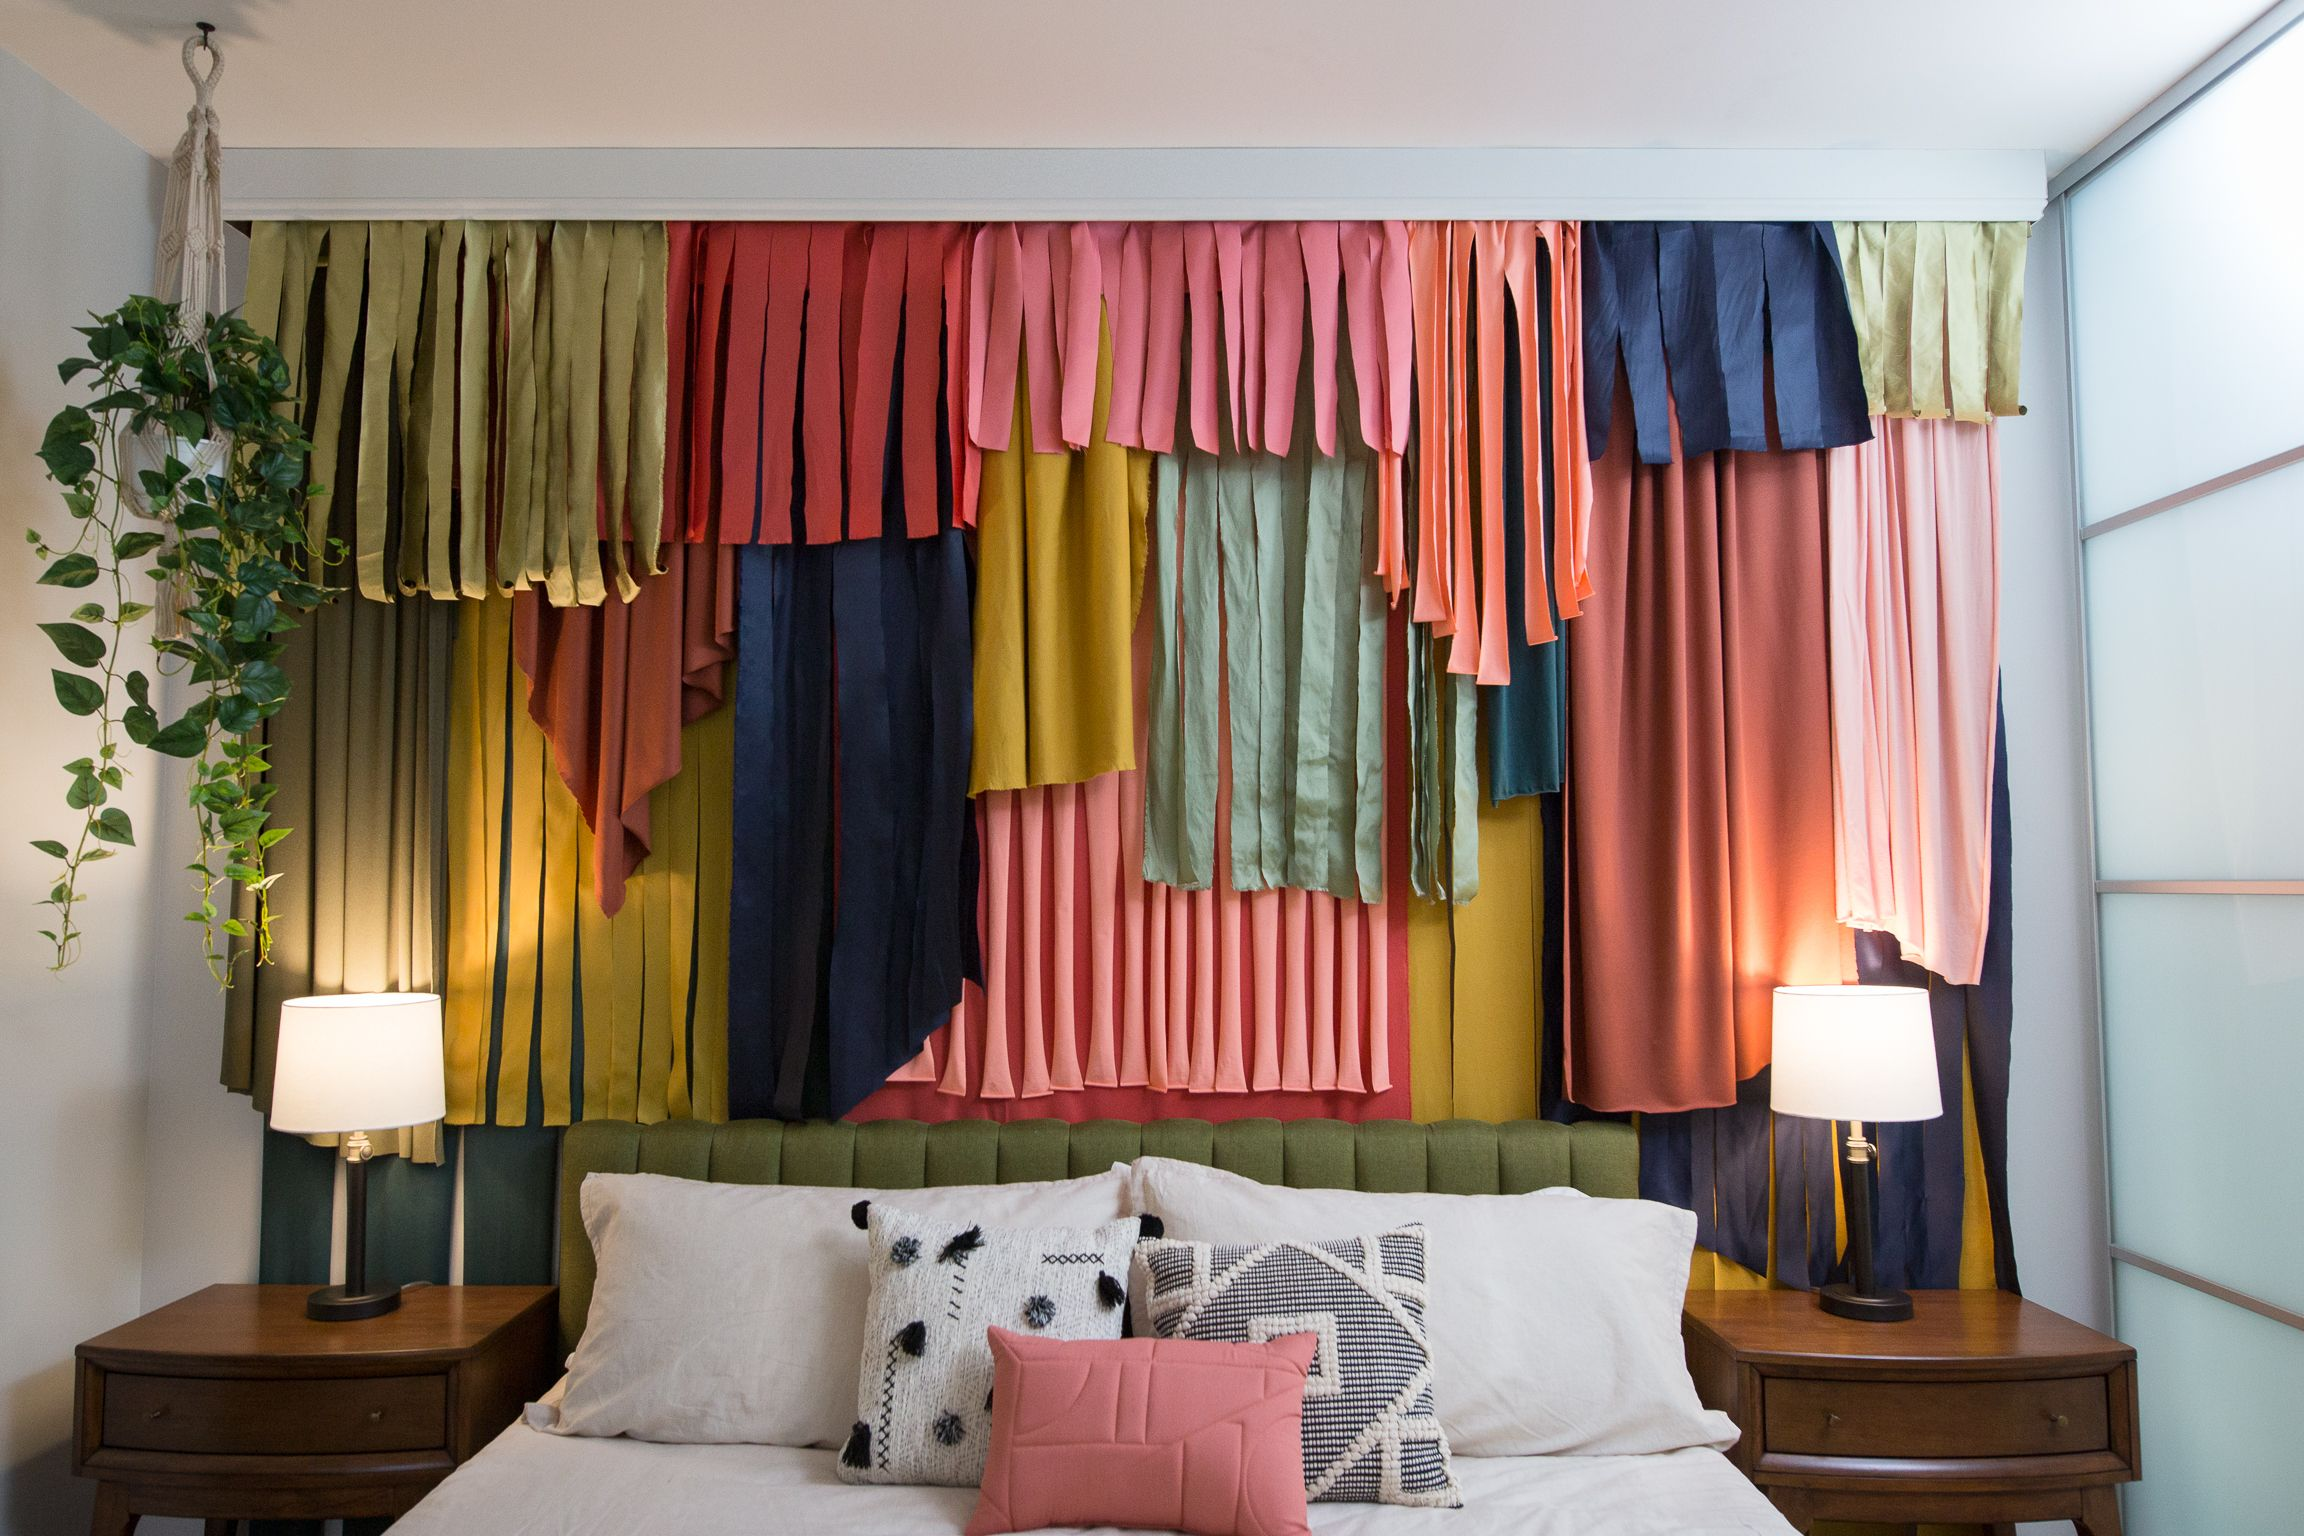 Diy Layered Curtain Wall Layered Curtains Headboard With